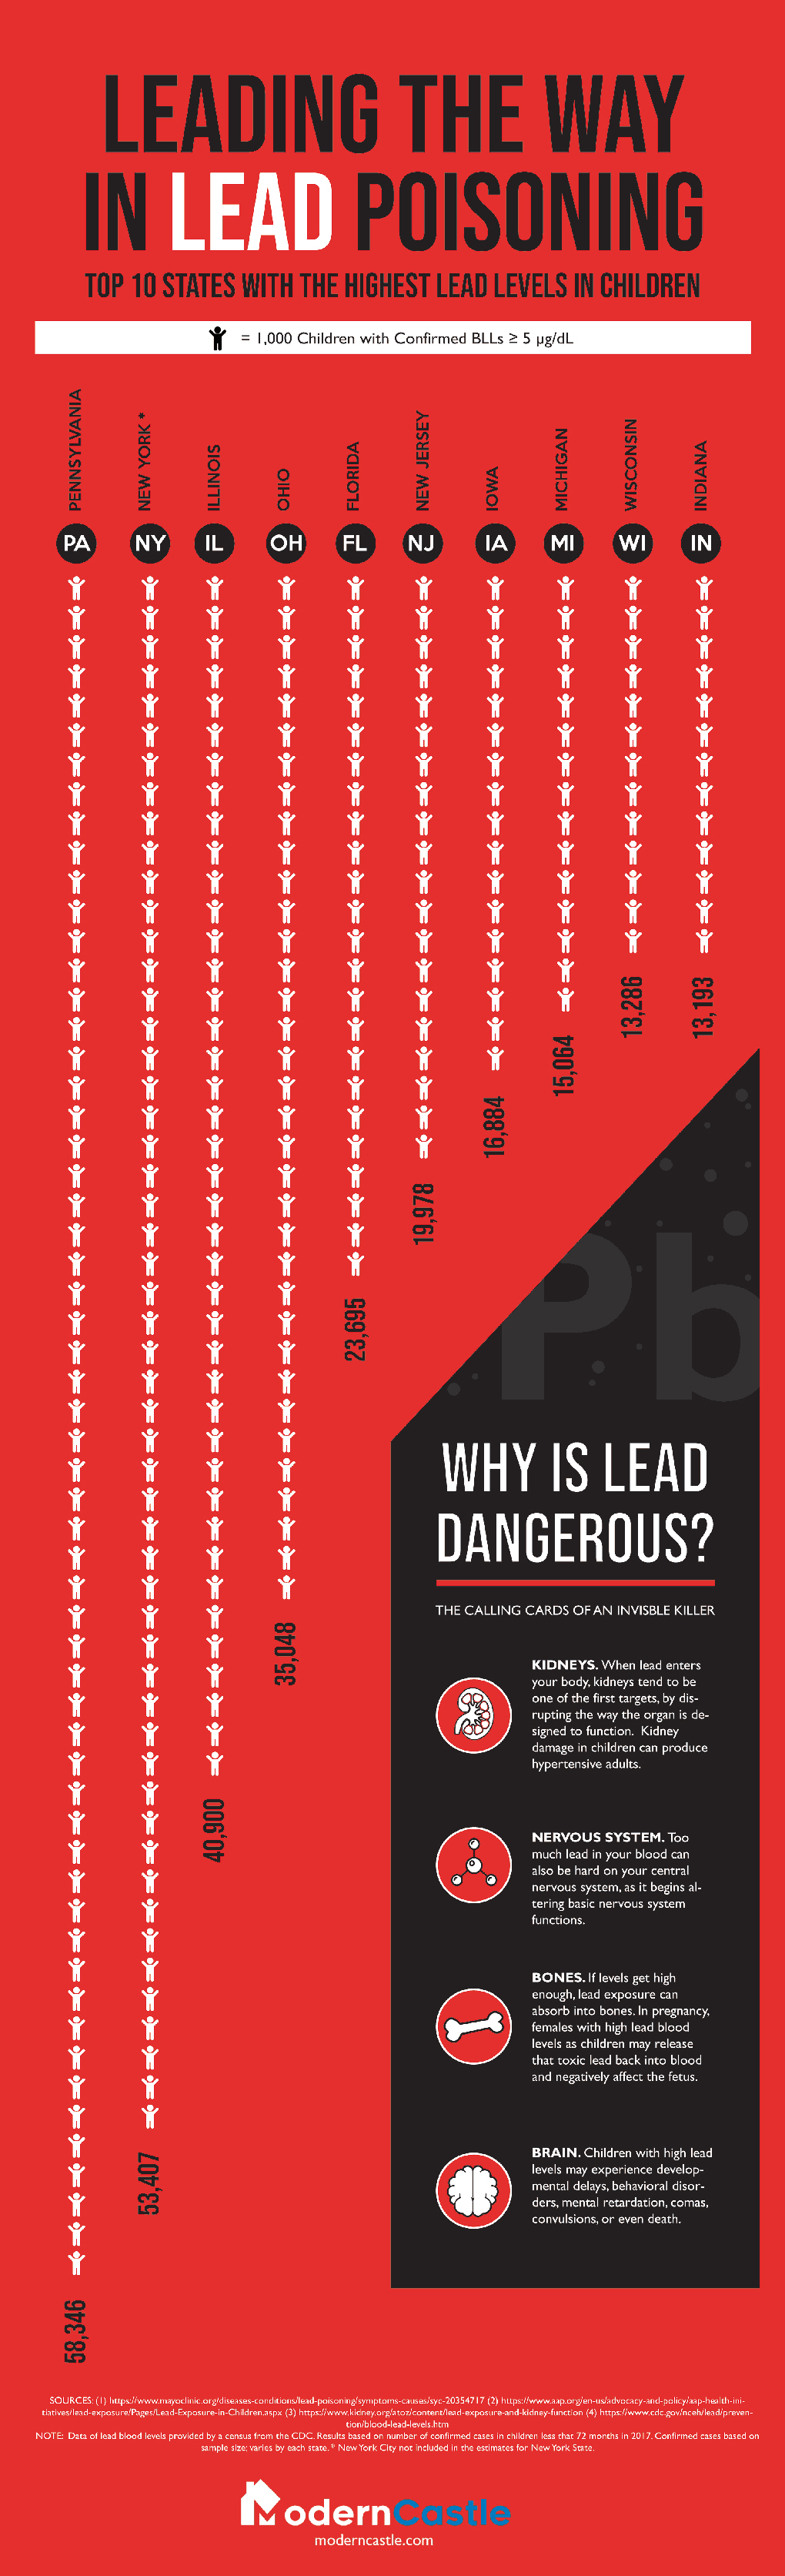 Lead Poisoning: Which US States Are Most Afflicted - Infographic